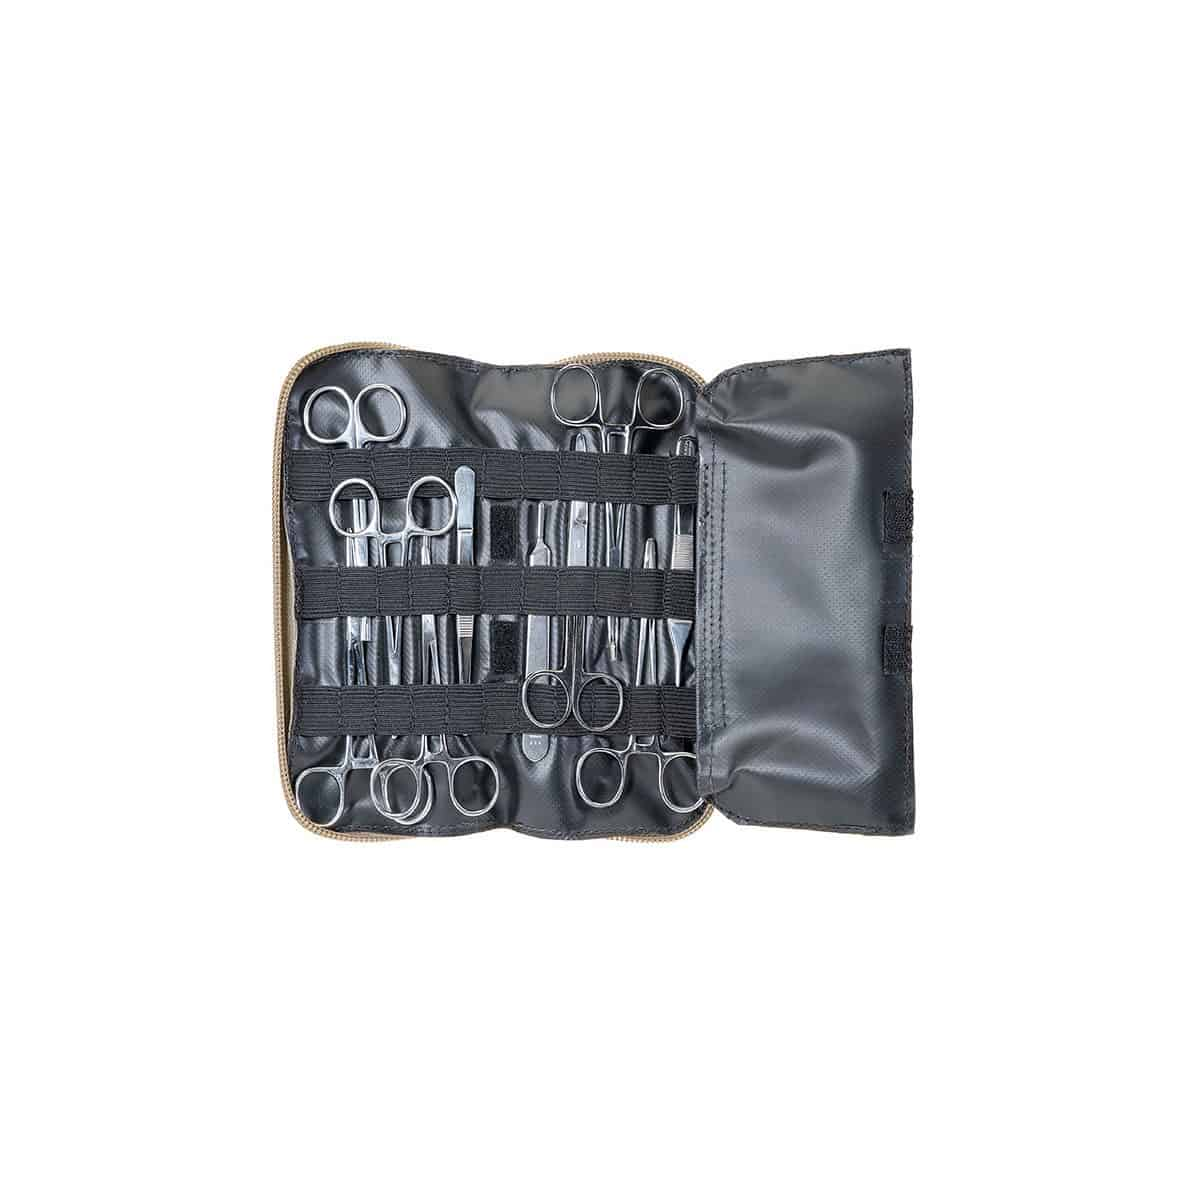 mojo minor surgery set open pouch